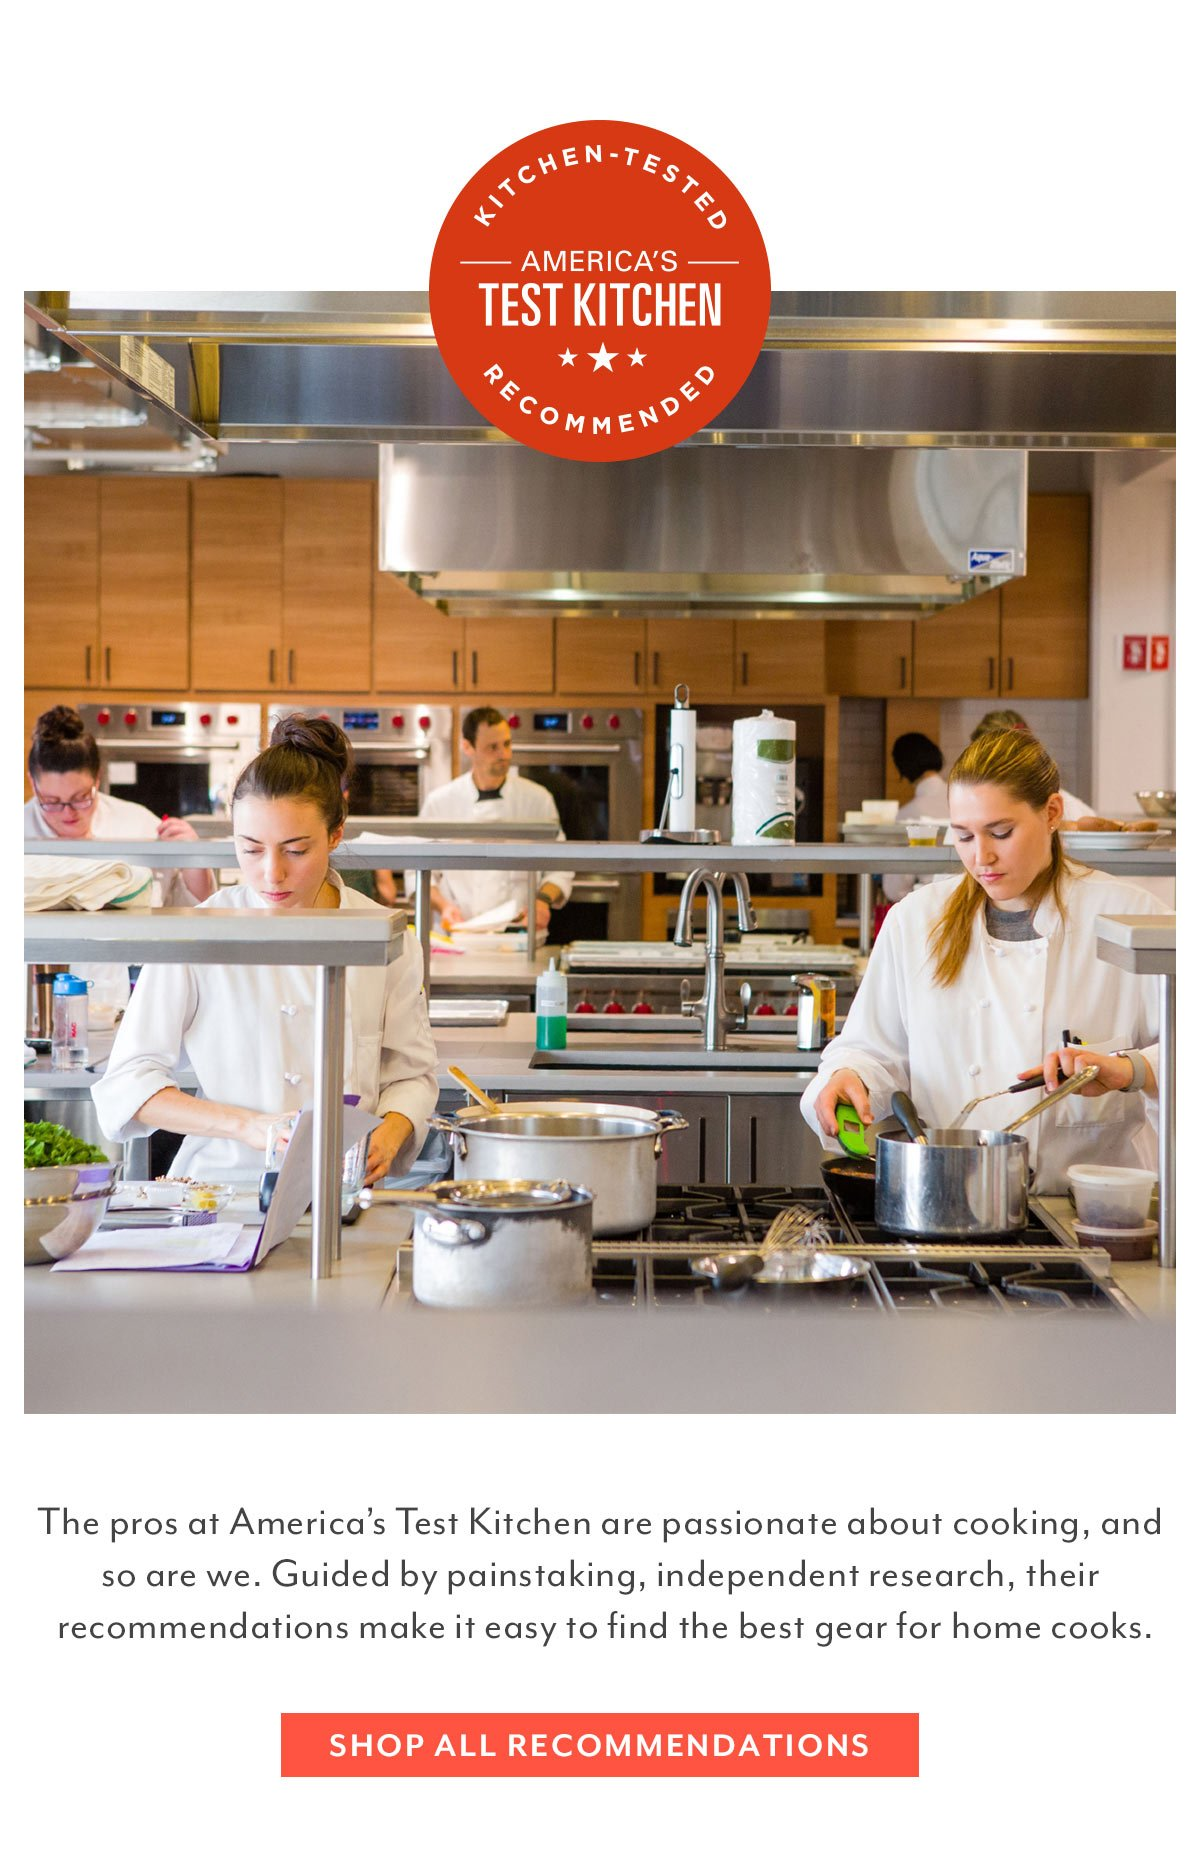 America's Test Kitchen Recommendations